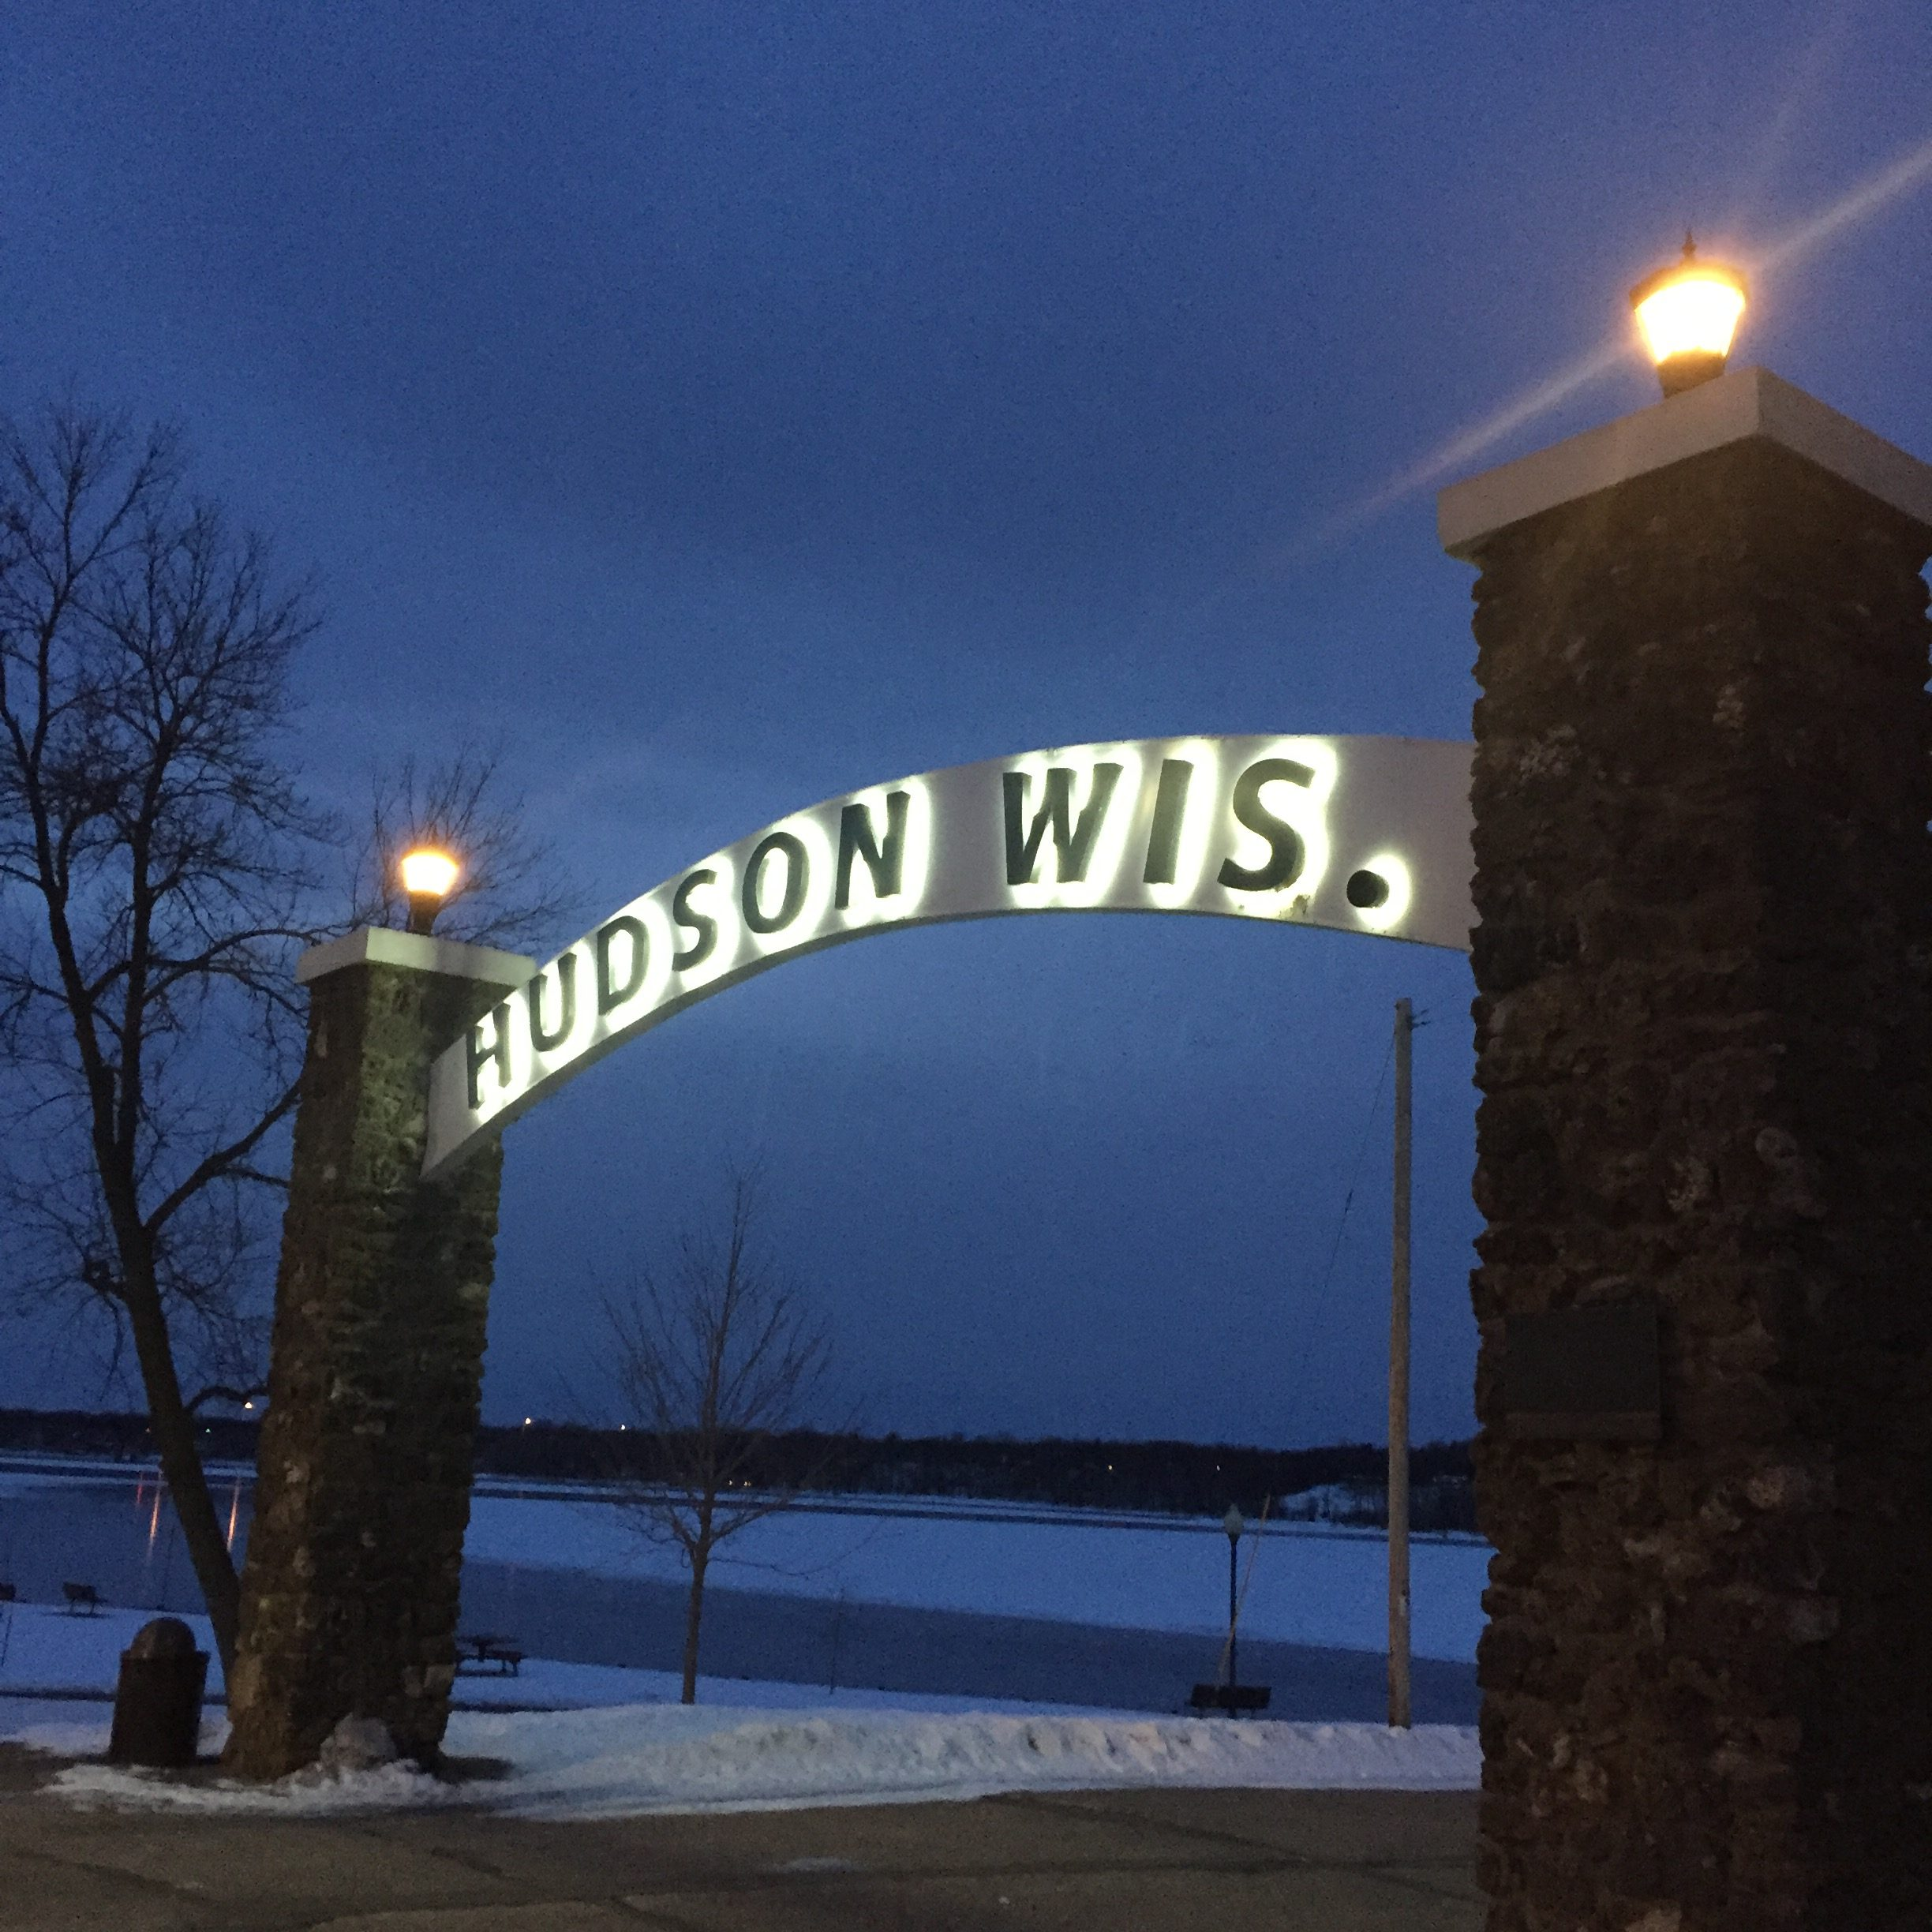 10 Reasons to Love Hudson